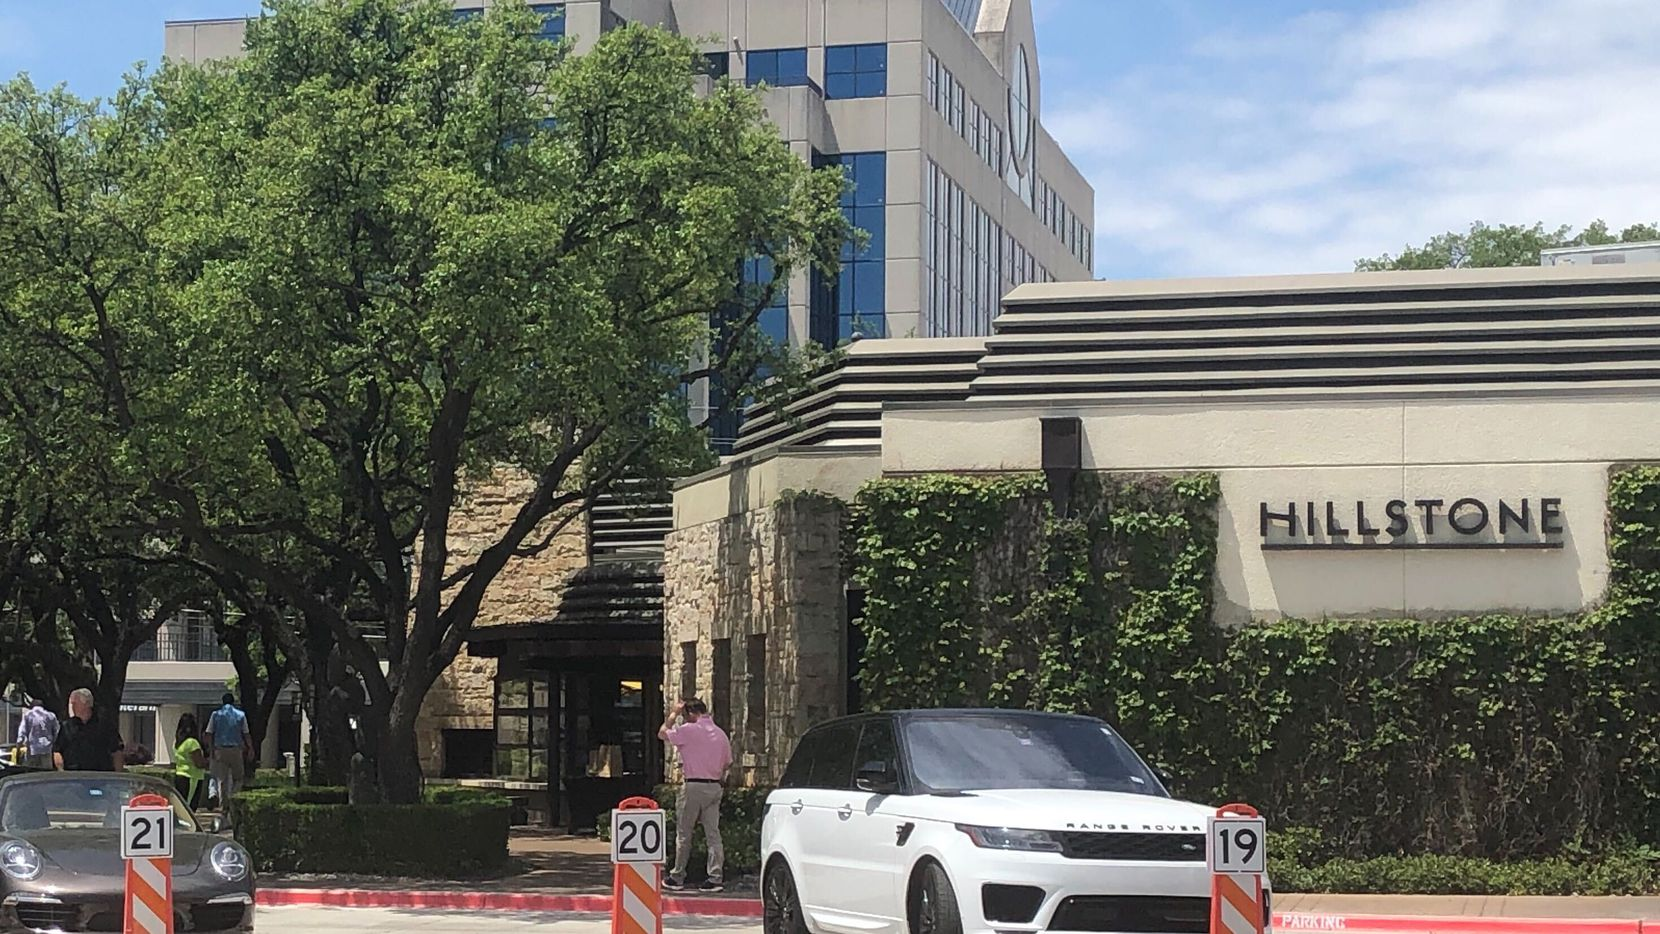 The exterior of restaurant Hillstone on Preston Road and Northwest Highway in Dallas on May 5, 2020.